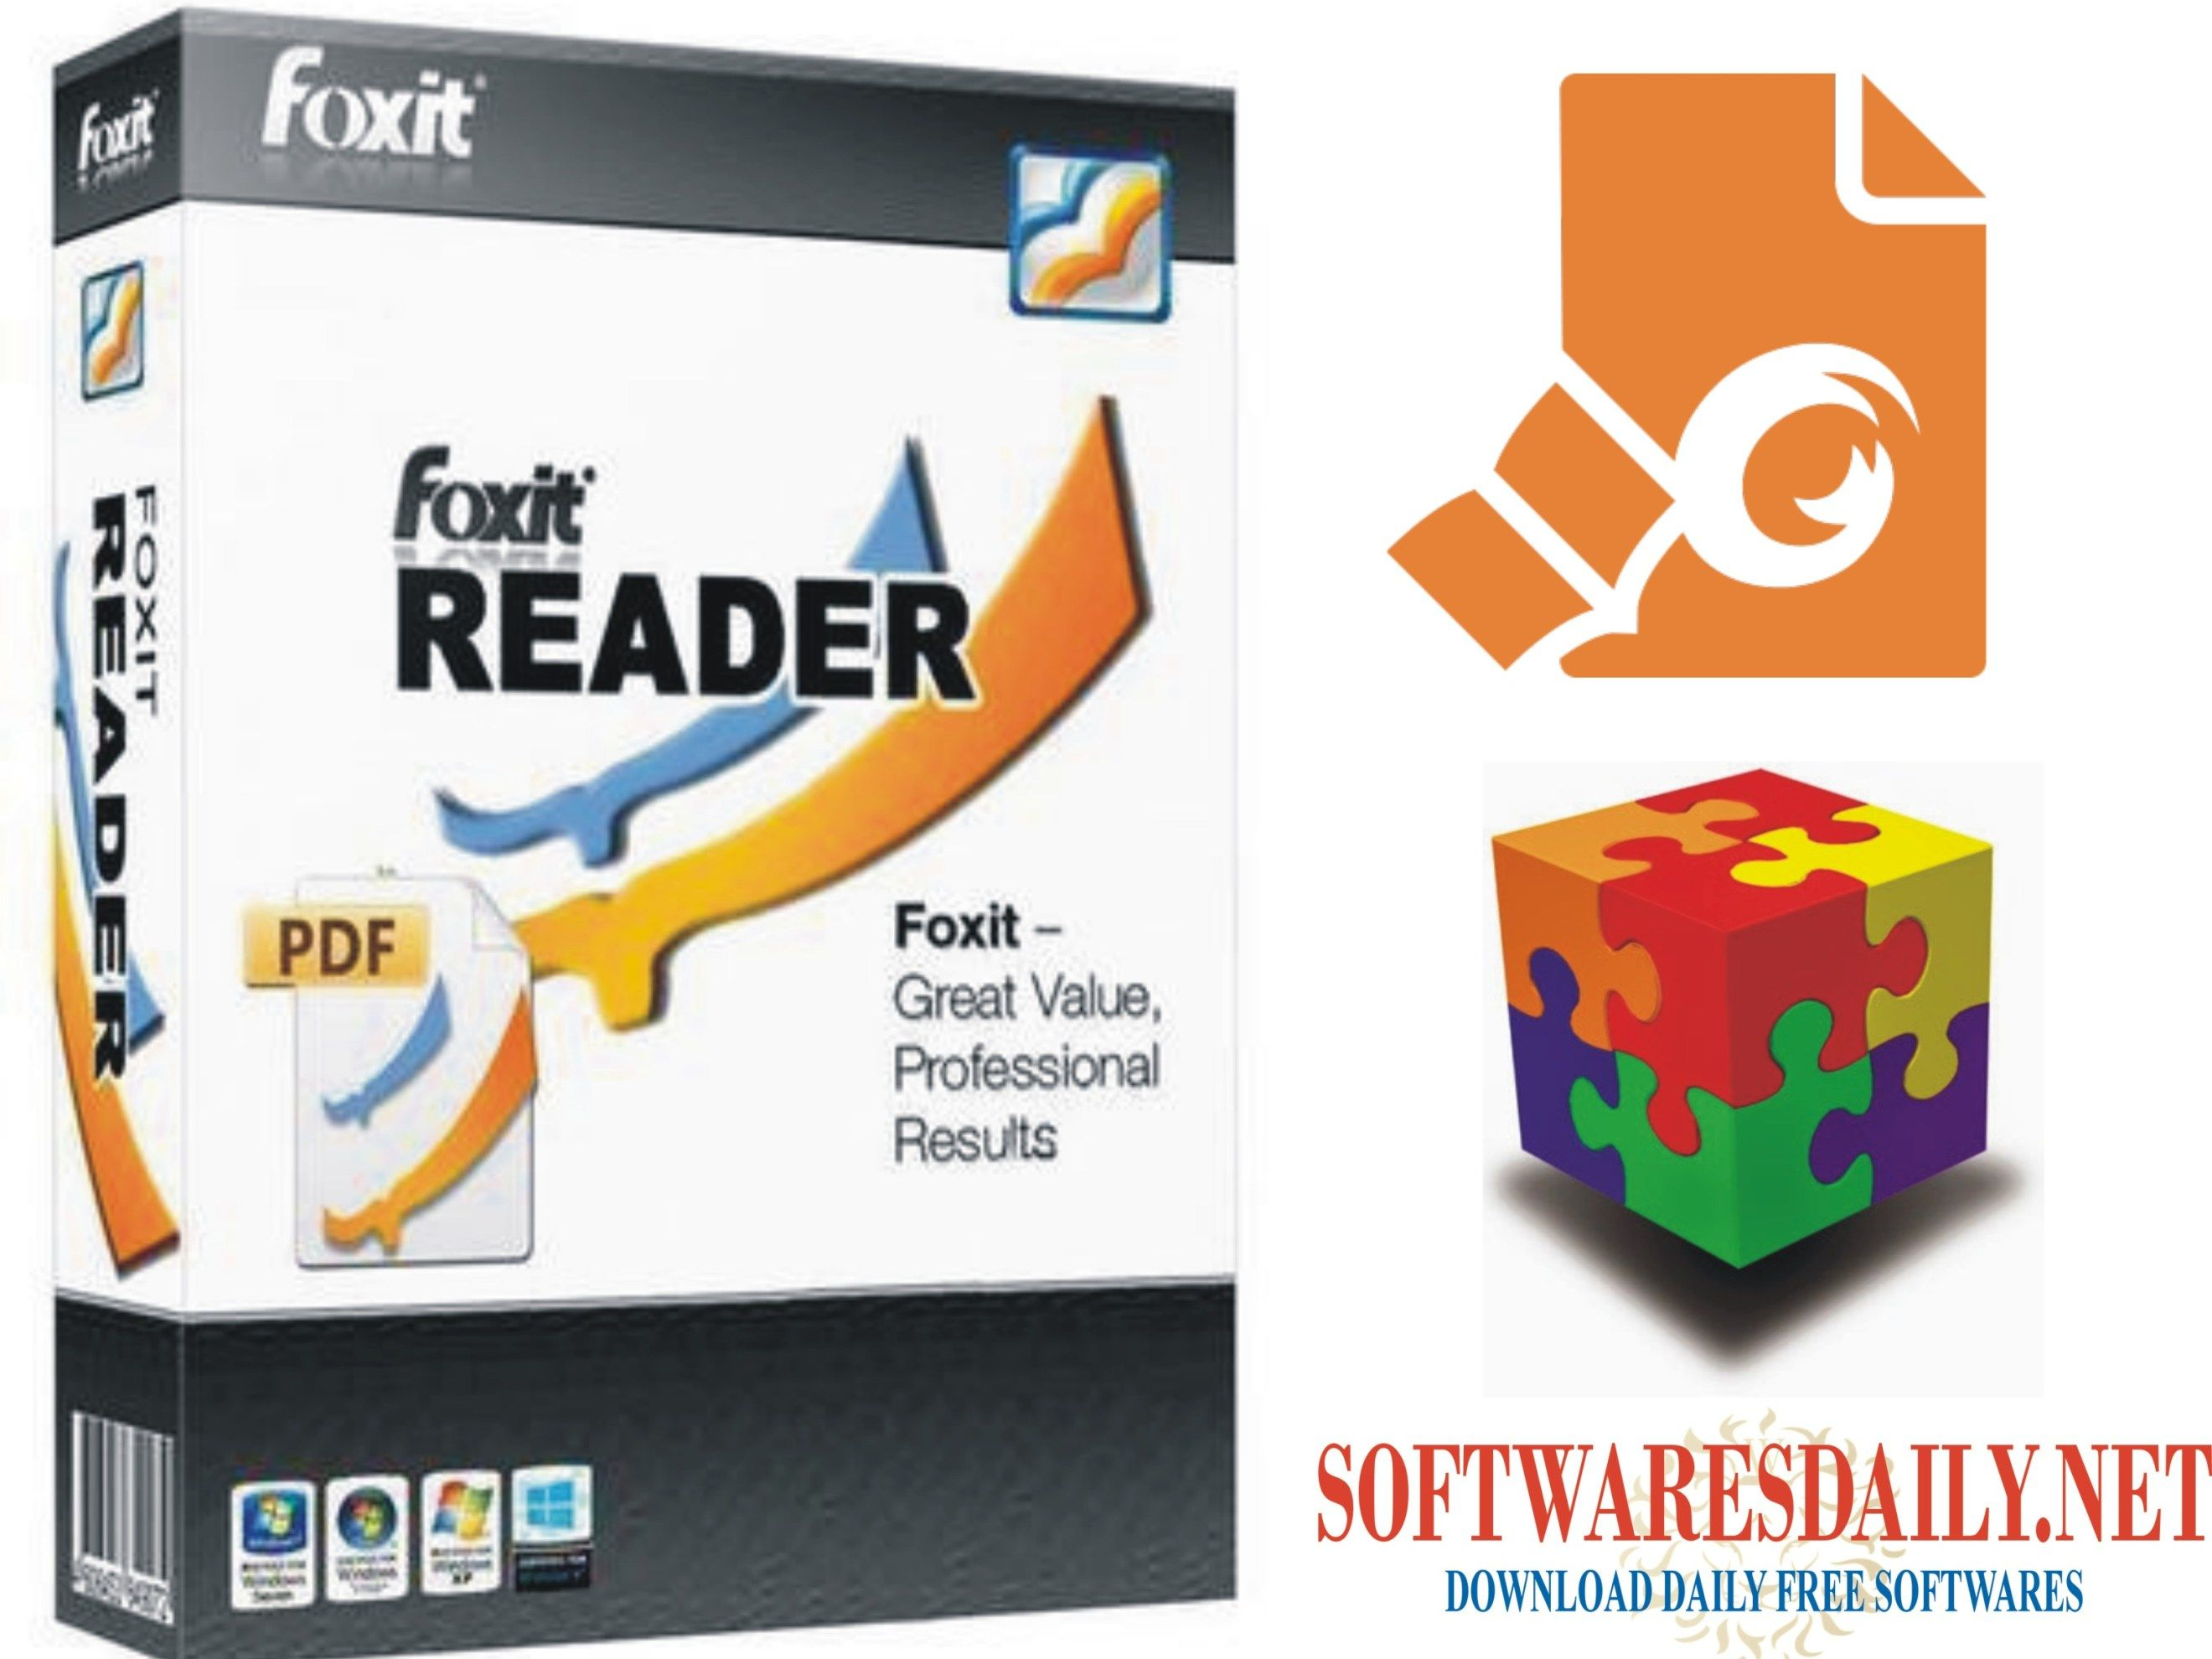 Foxit Reader 20172018 Full Free Download Readers, Free